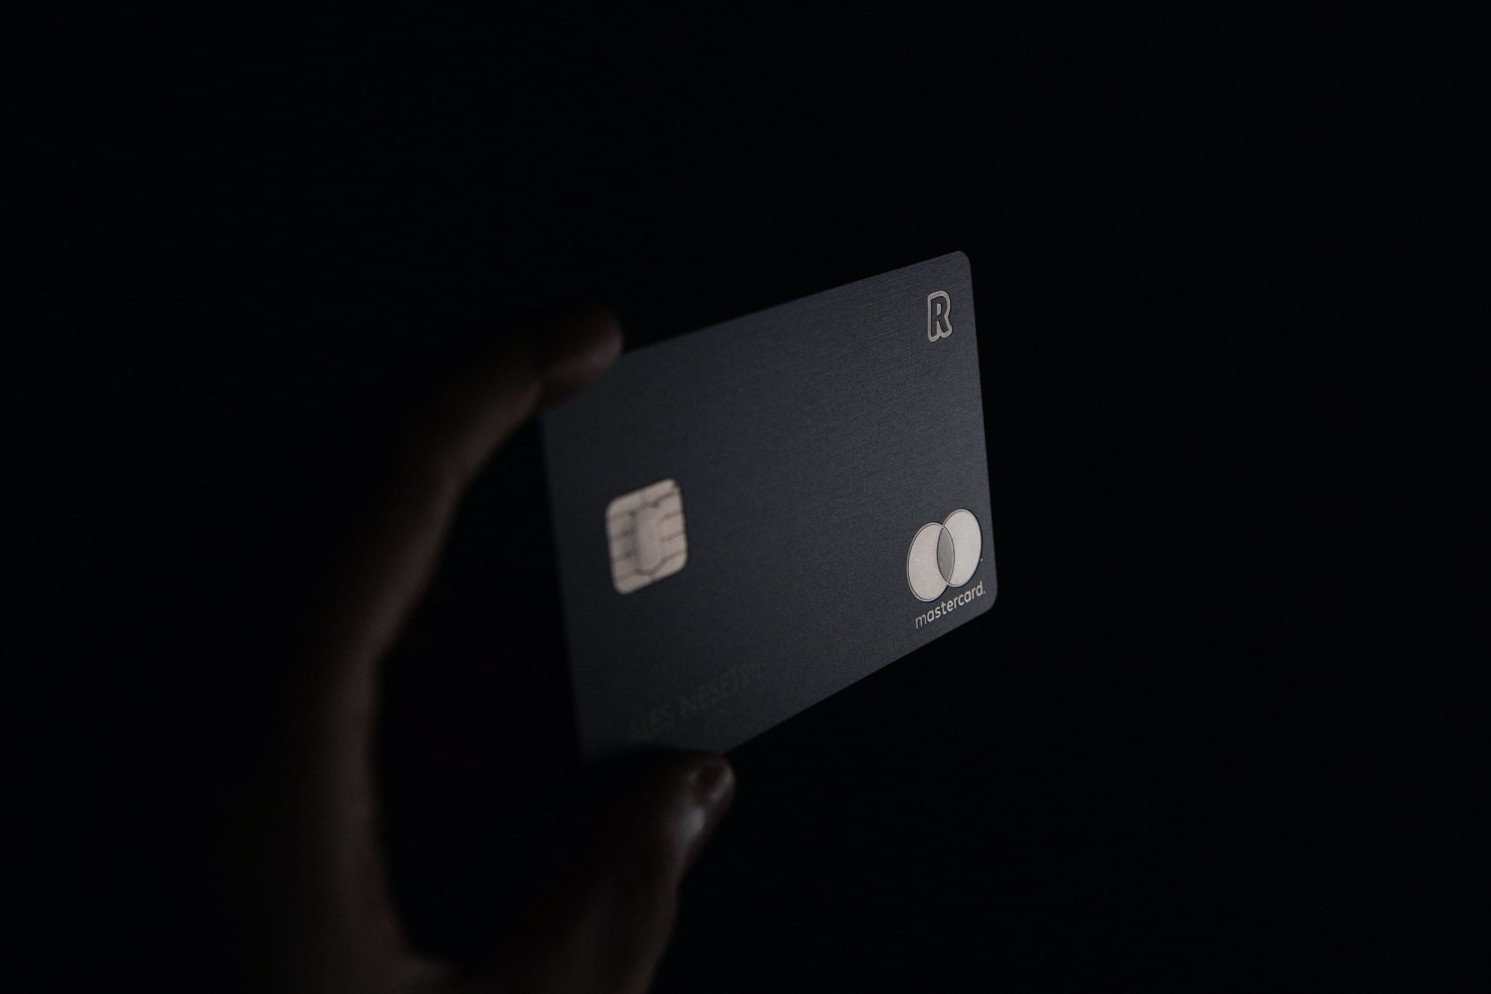 revolut card on black background